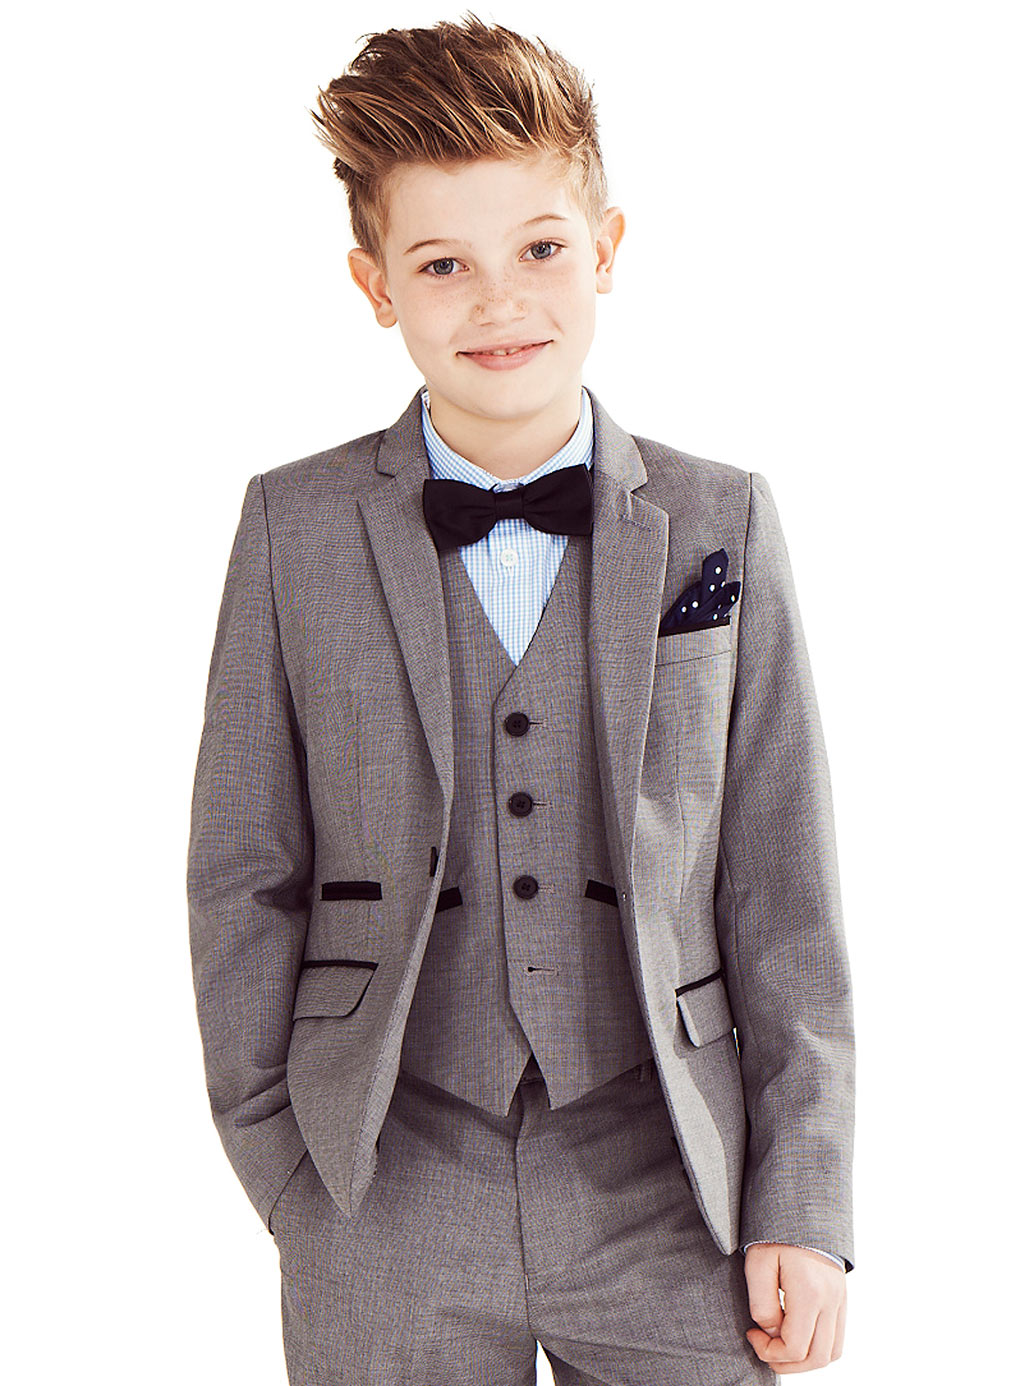 boys suit suit for boys - google zoeken orkrbyz